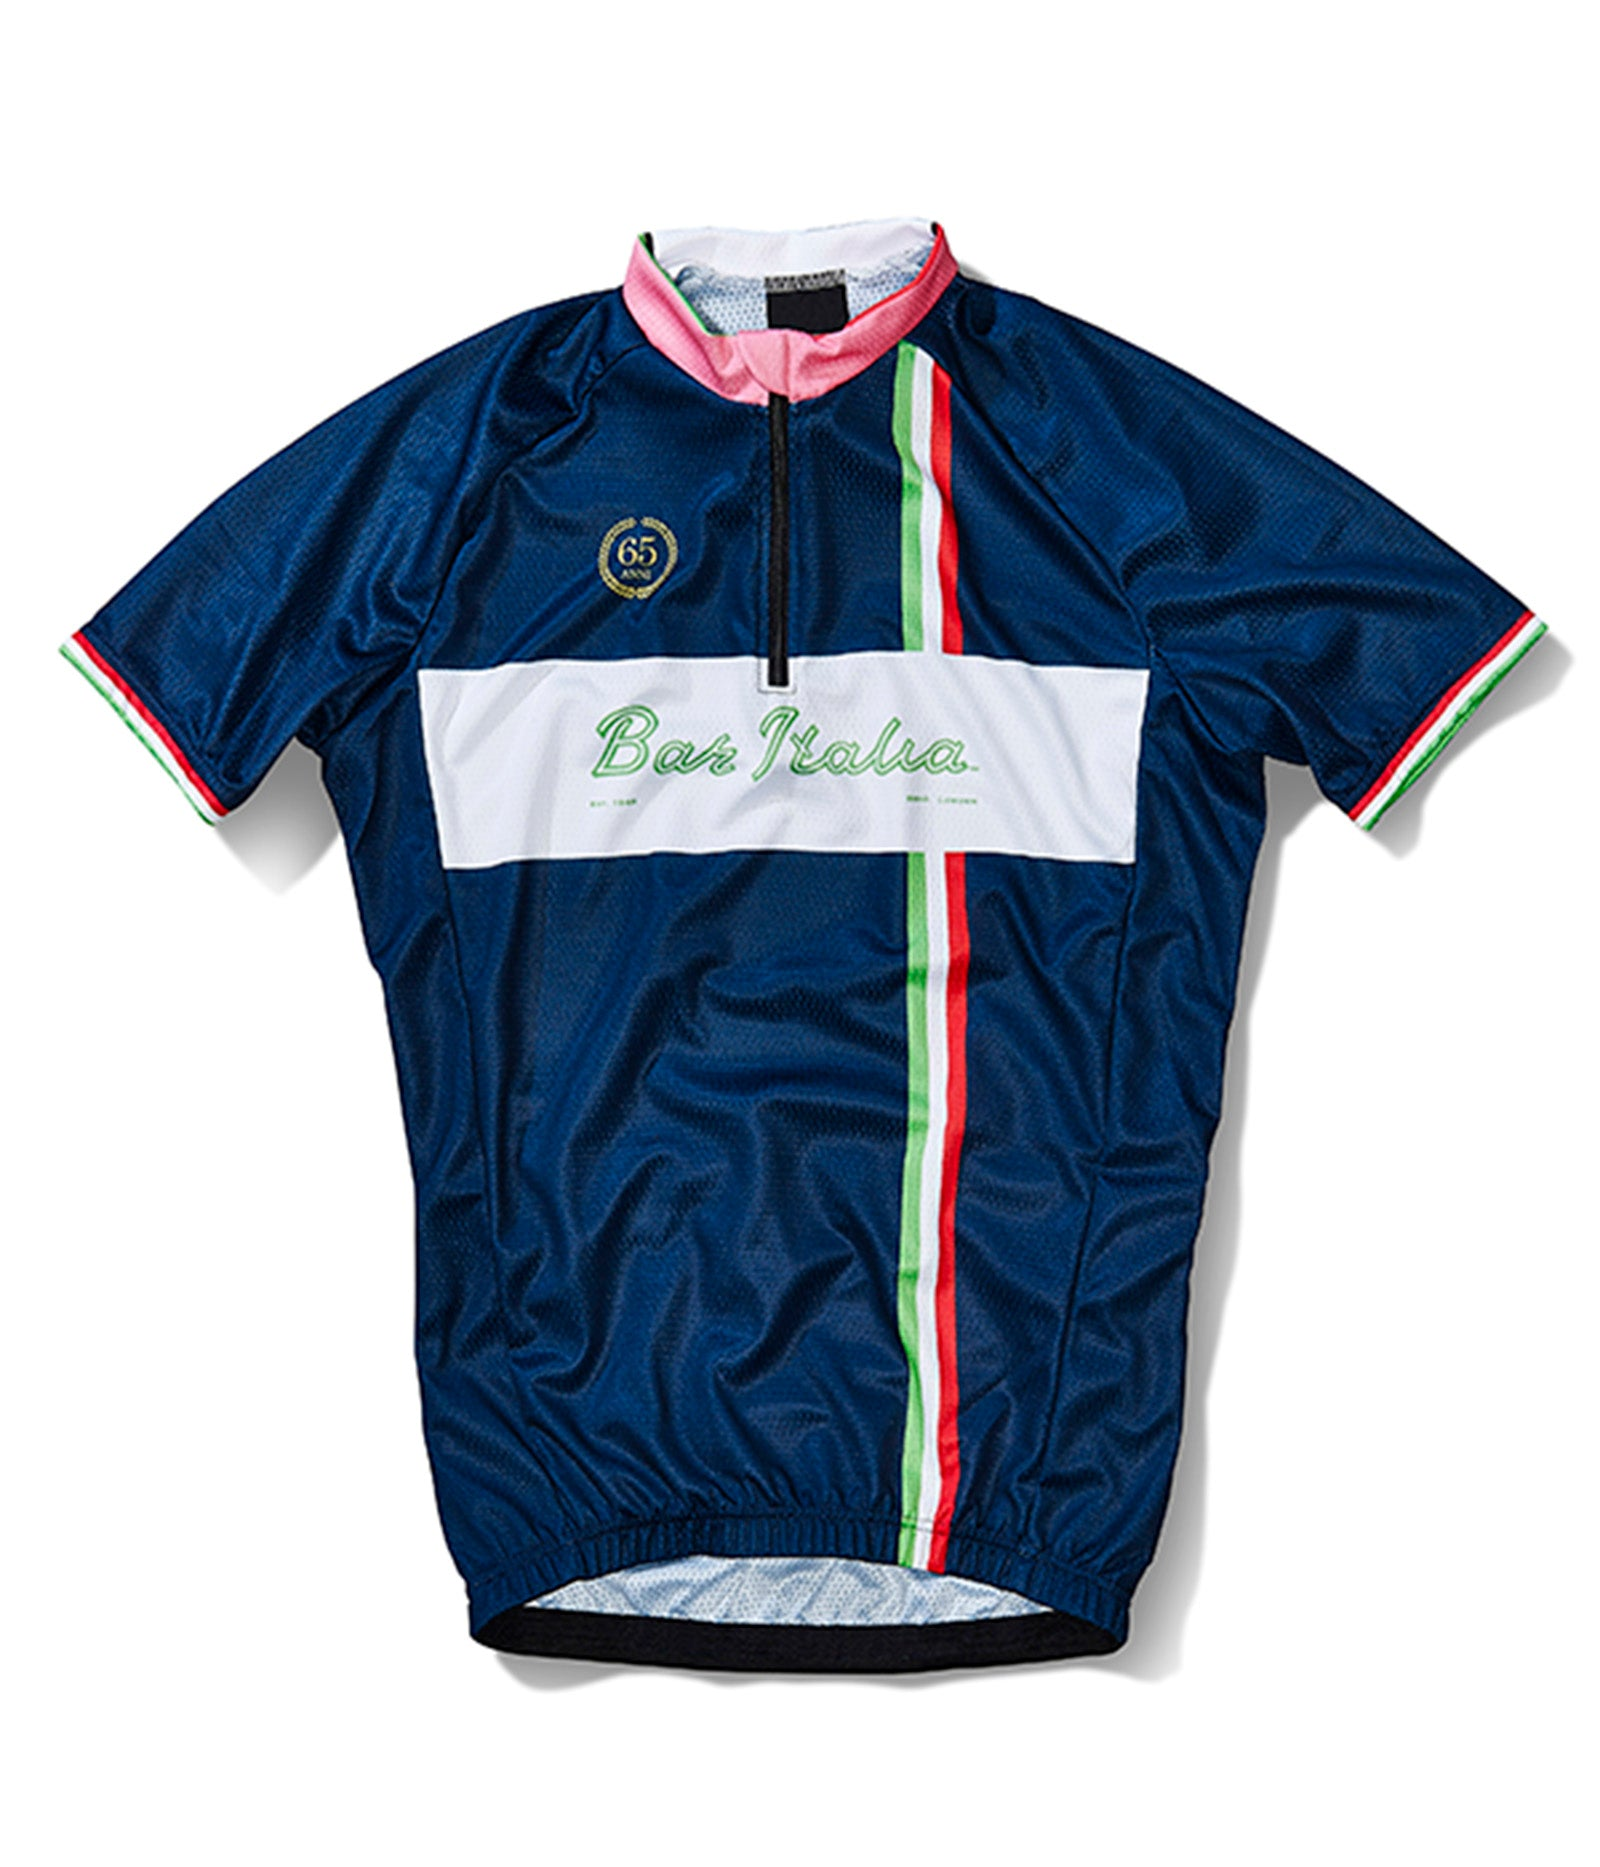 Special edition Bar Italia jersey